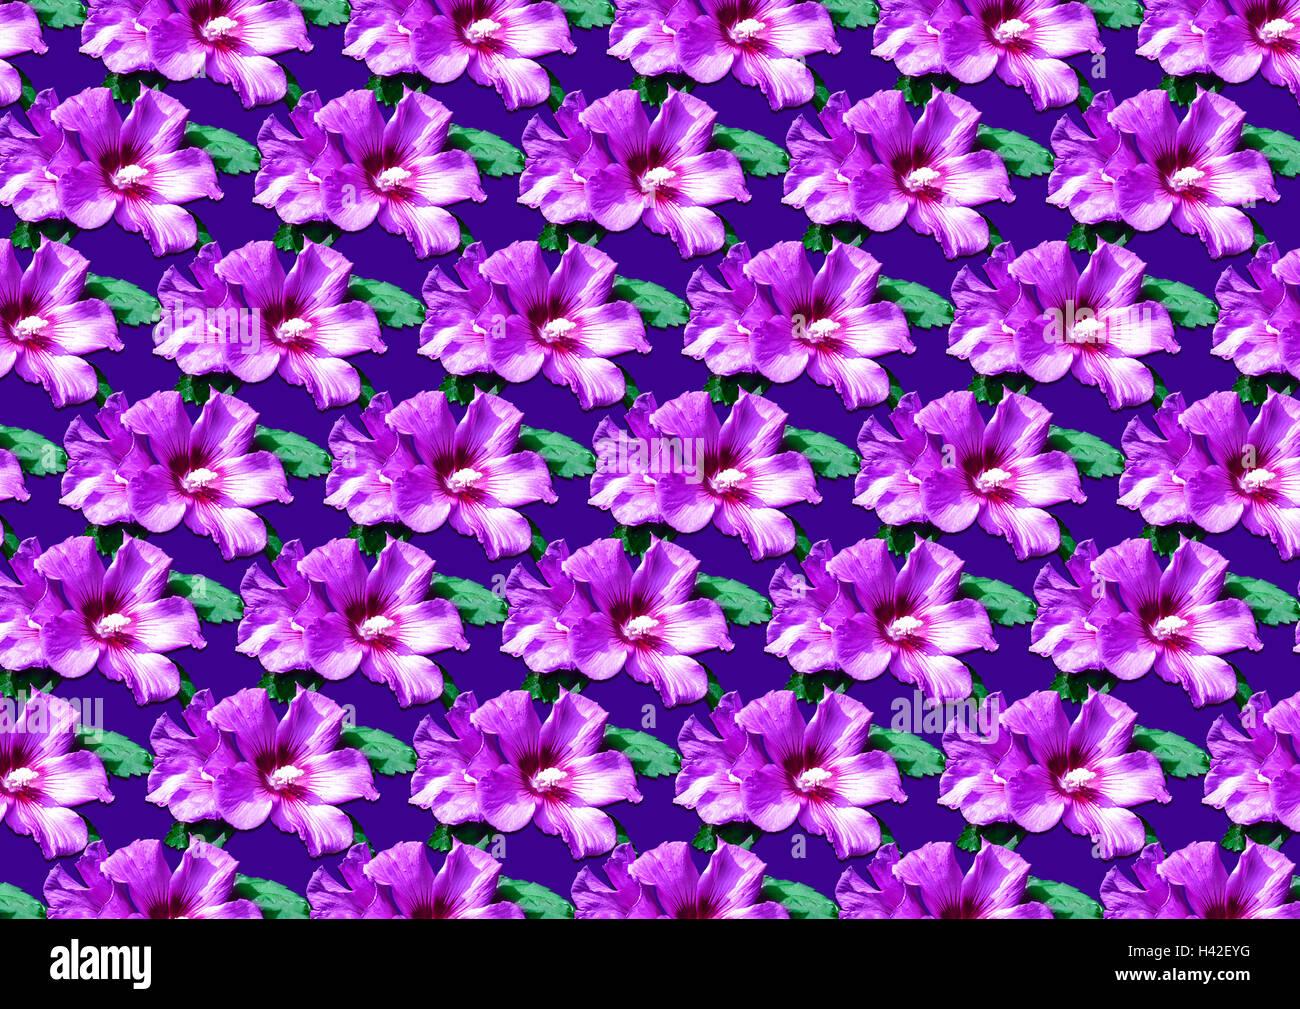 Purple Floral Fabric Background Stockfotos & Purple Floral Fabric ...